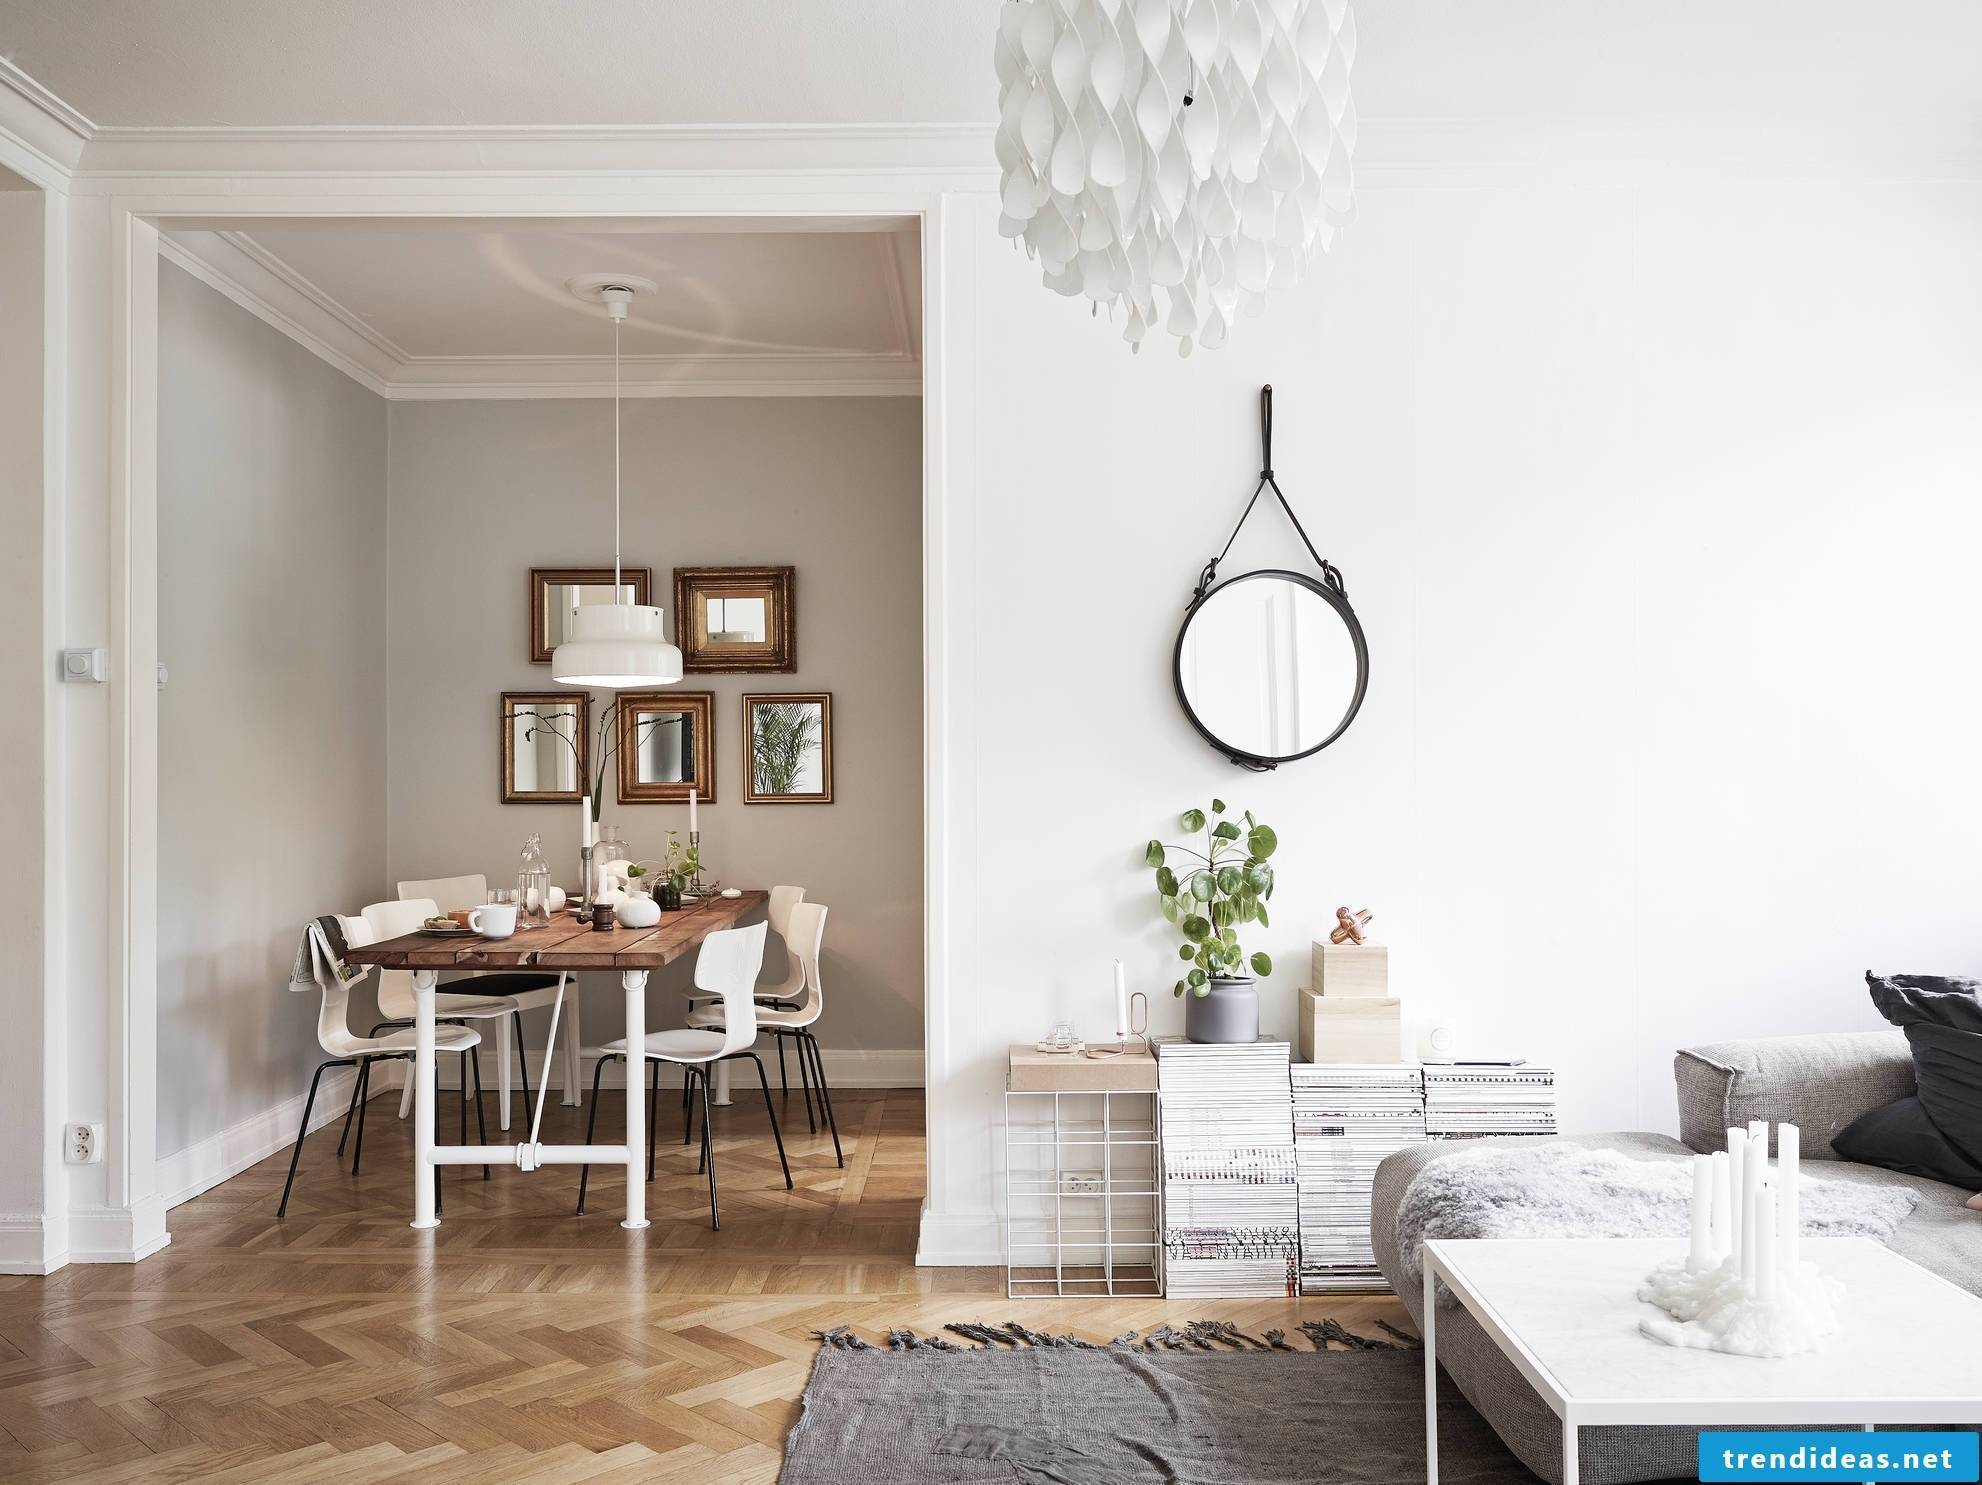 White with wood - the perfect combination